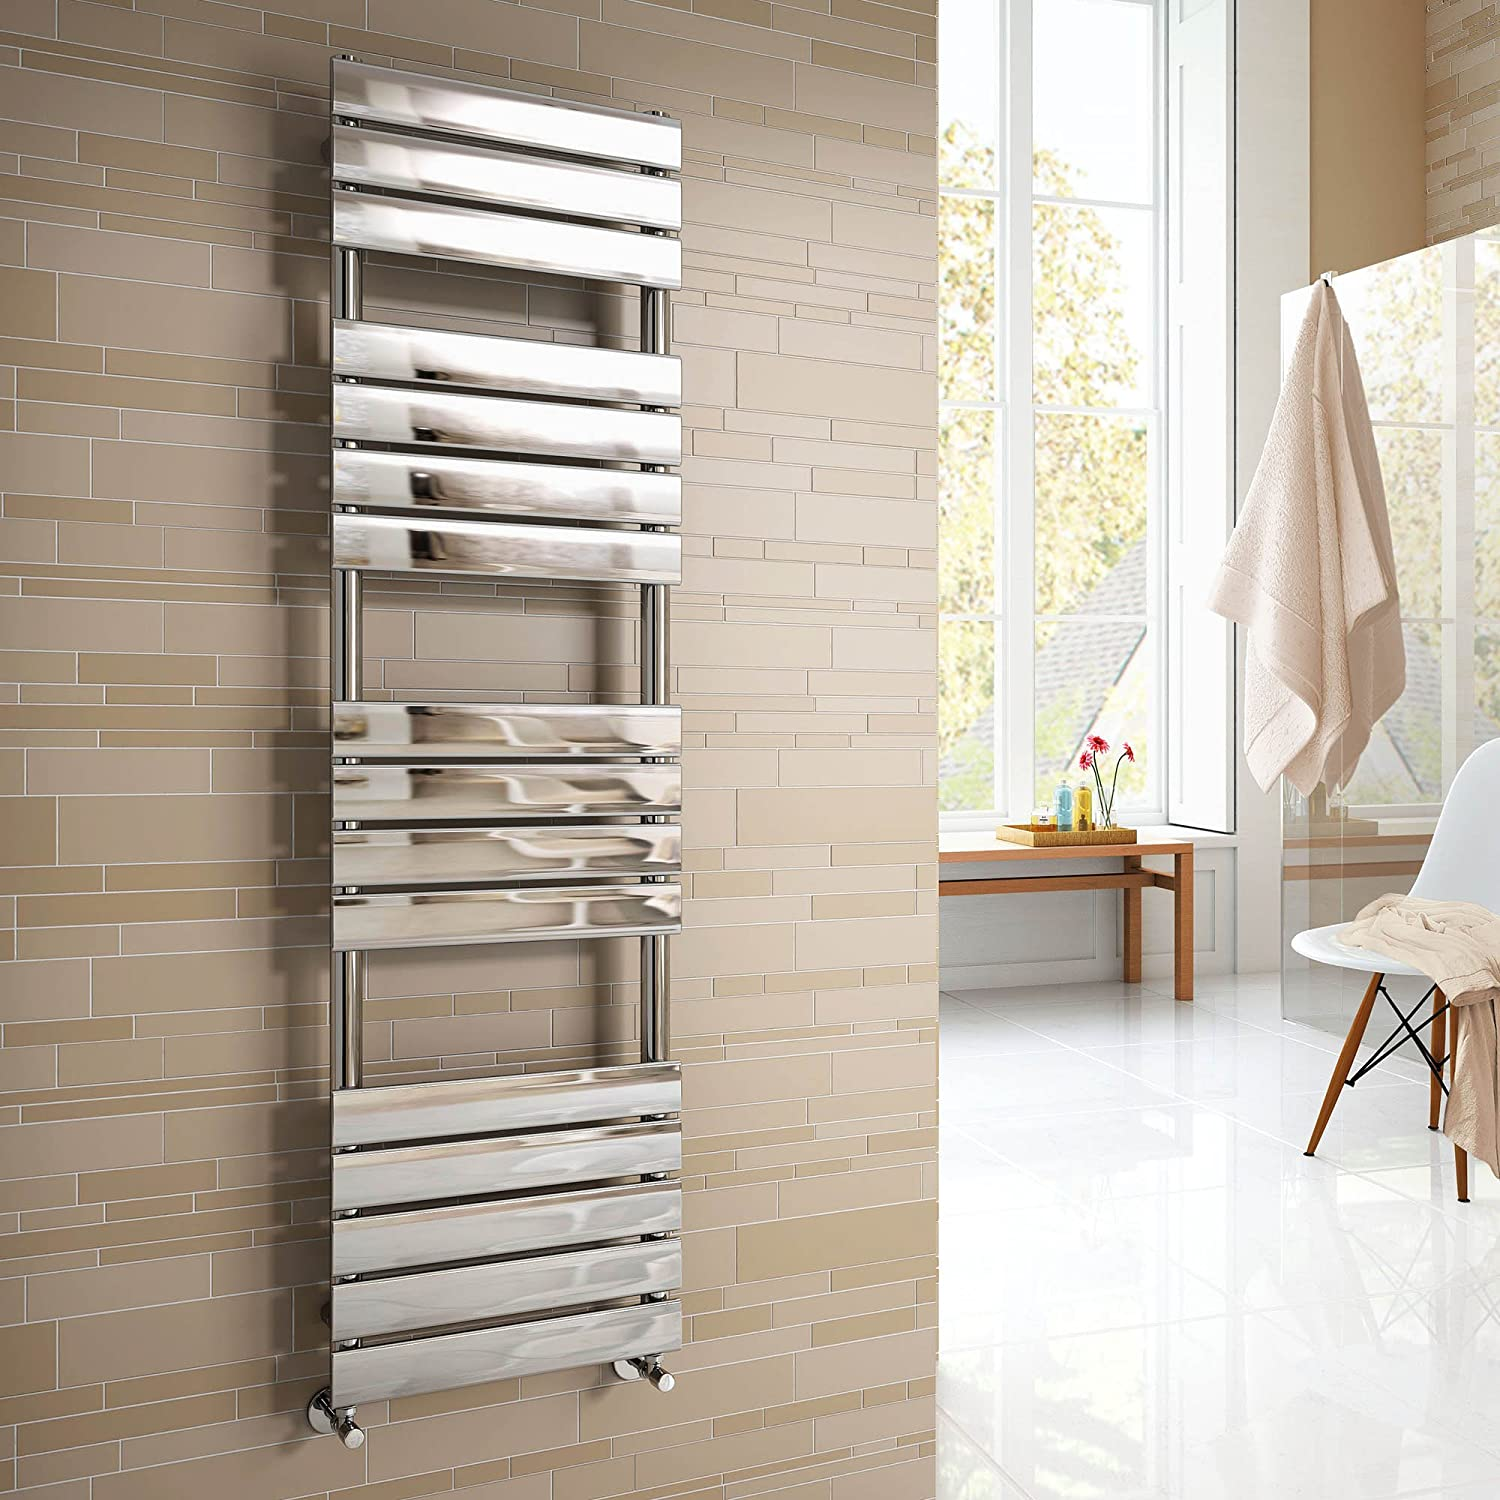 Vicenza Designer Flat Chrome Heated Bathroom Towel Rail Radiator 1600 X 450  Mm: IBathUK: Amazon.co.uk: Kitchen U0026 Home